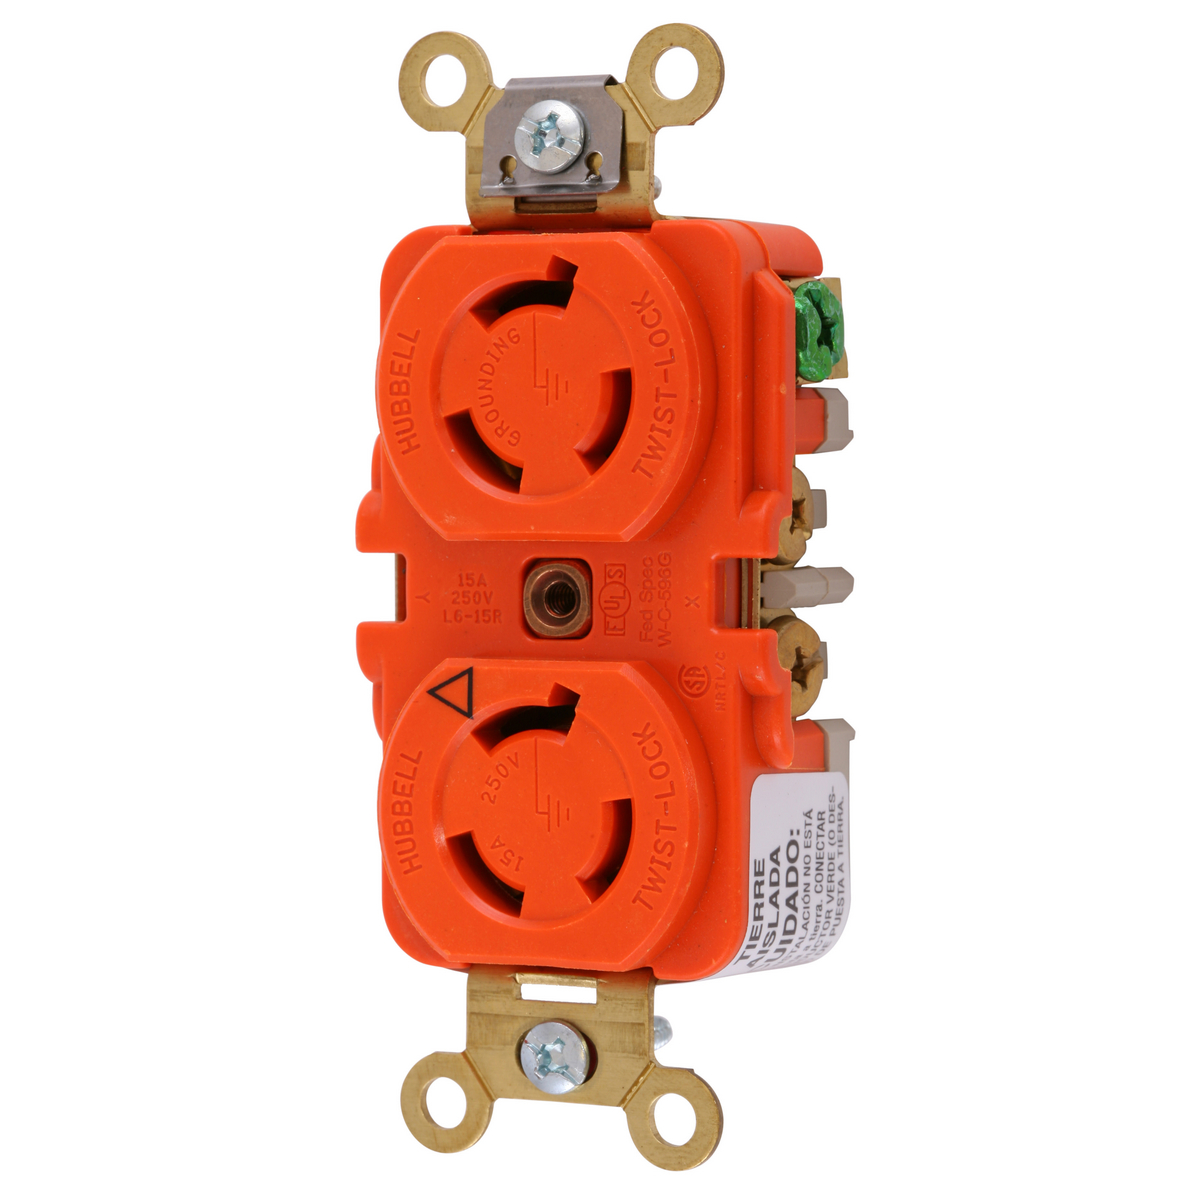 Hubbell IG4550A 15 Amp 250 VAC 2-Pole 3-Wire NEMA L6-15R Orange Isolated Ground Duplex Receptacle